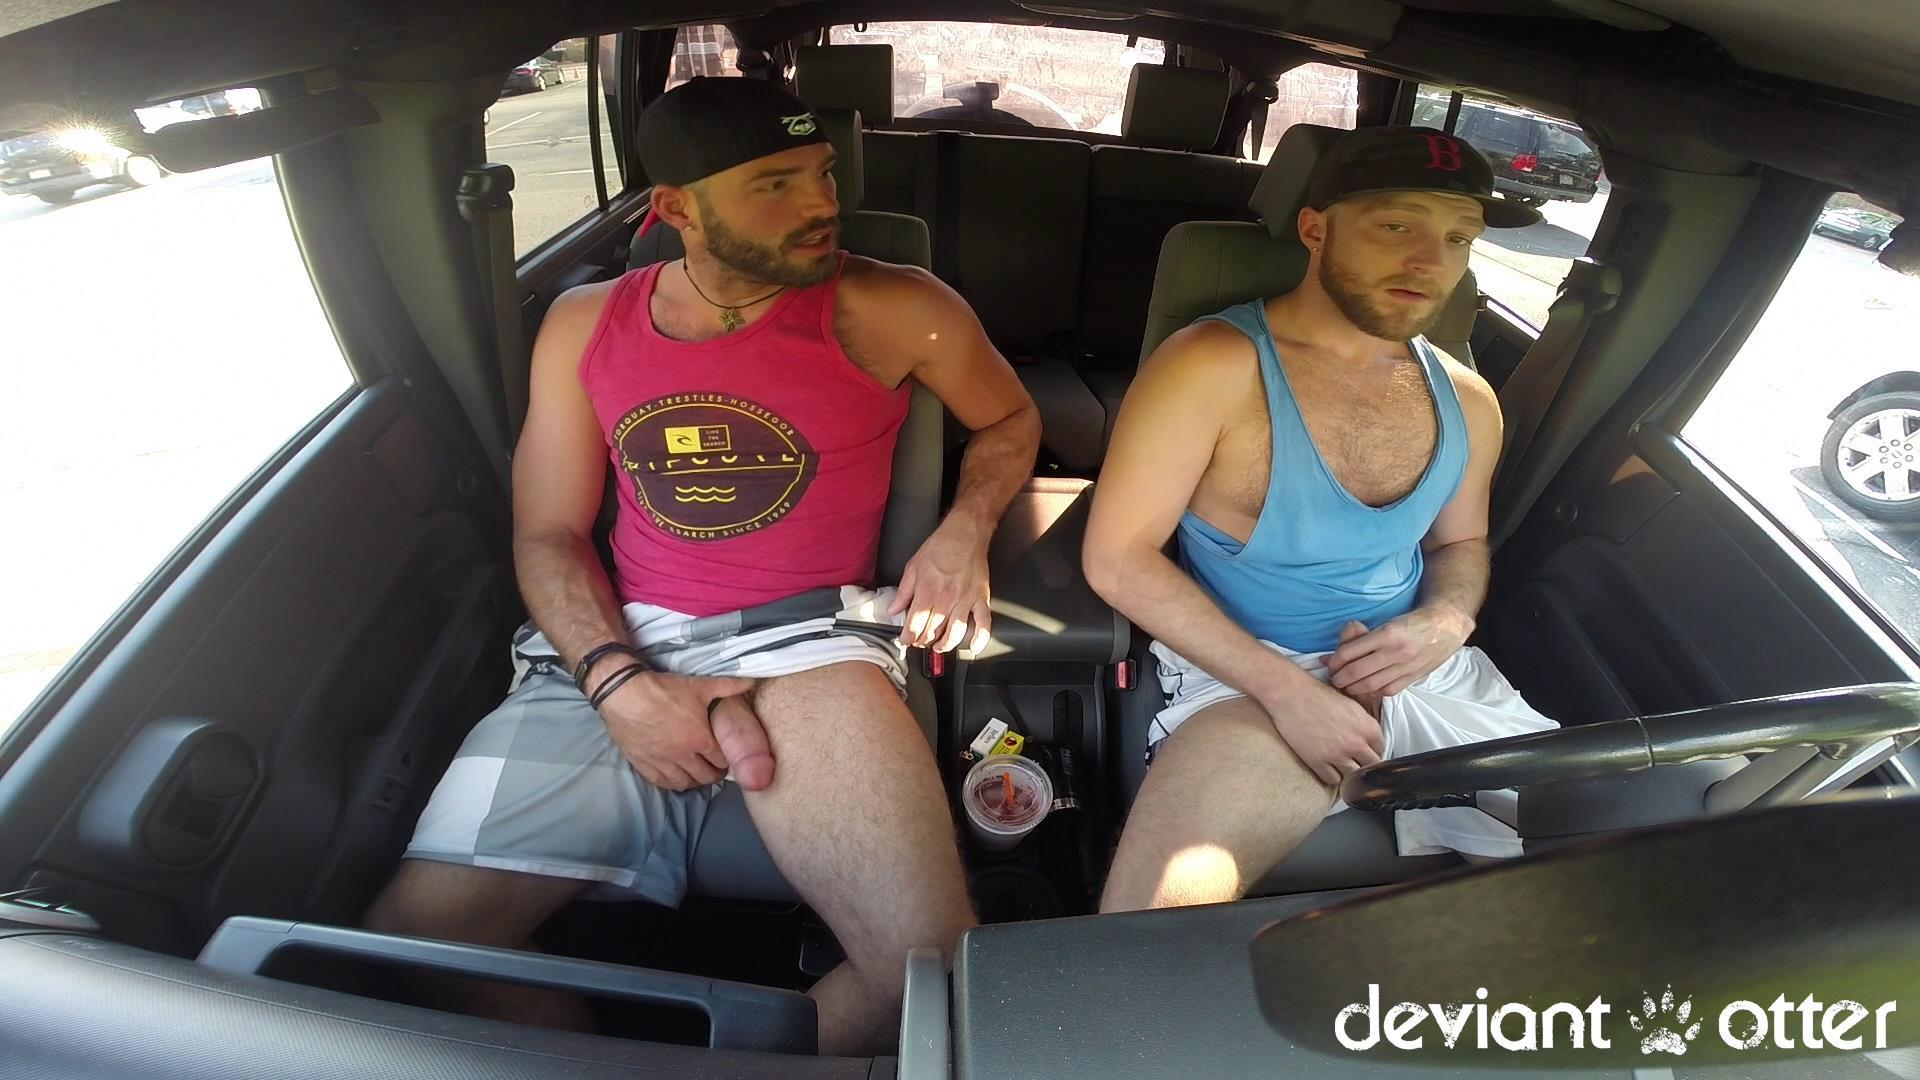 Deviant Otter Xavier Sucking Cock In Public Hairy Guys Amateur Gay Porn 03 Masculine Hairy Guys Sucking Each Others Cock In A Parking Lot